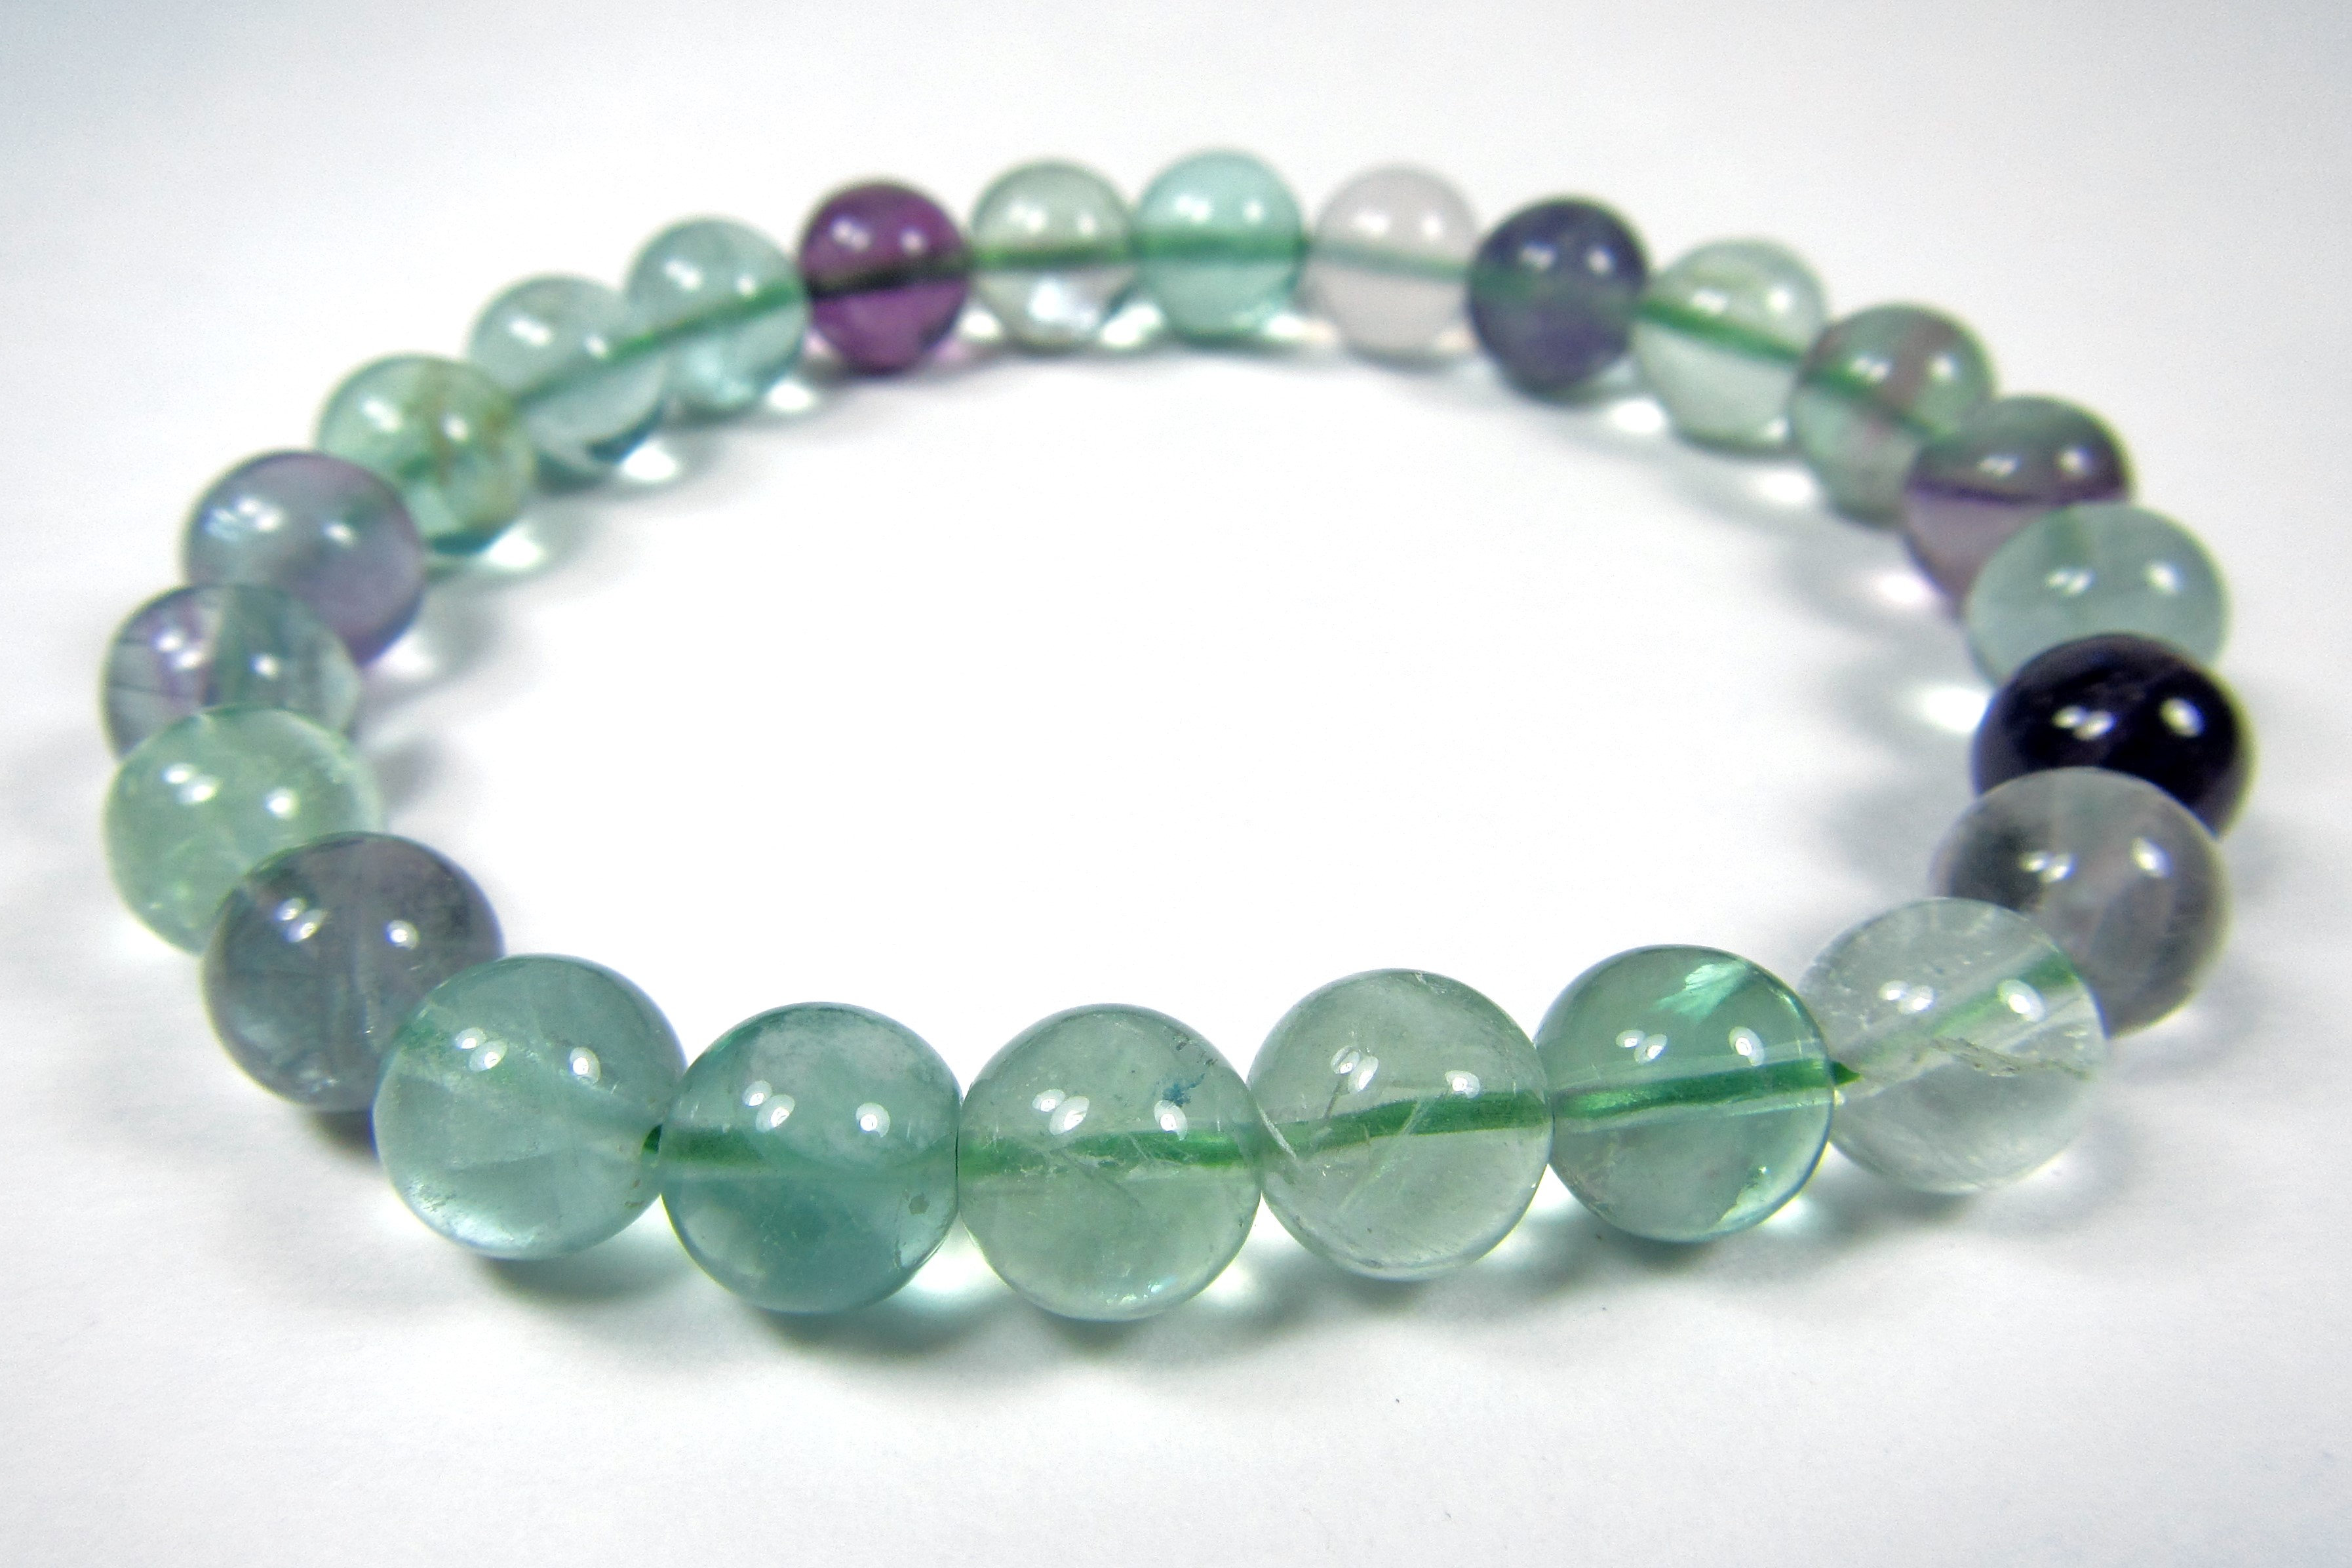 canada beads rocks beaded bracelet products endless jade and canadian gems